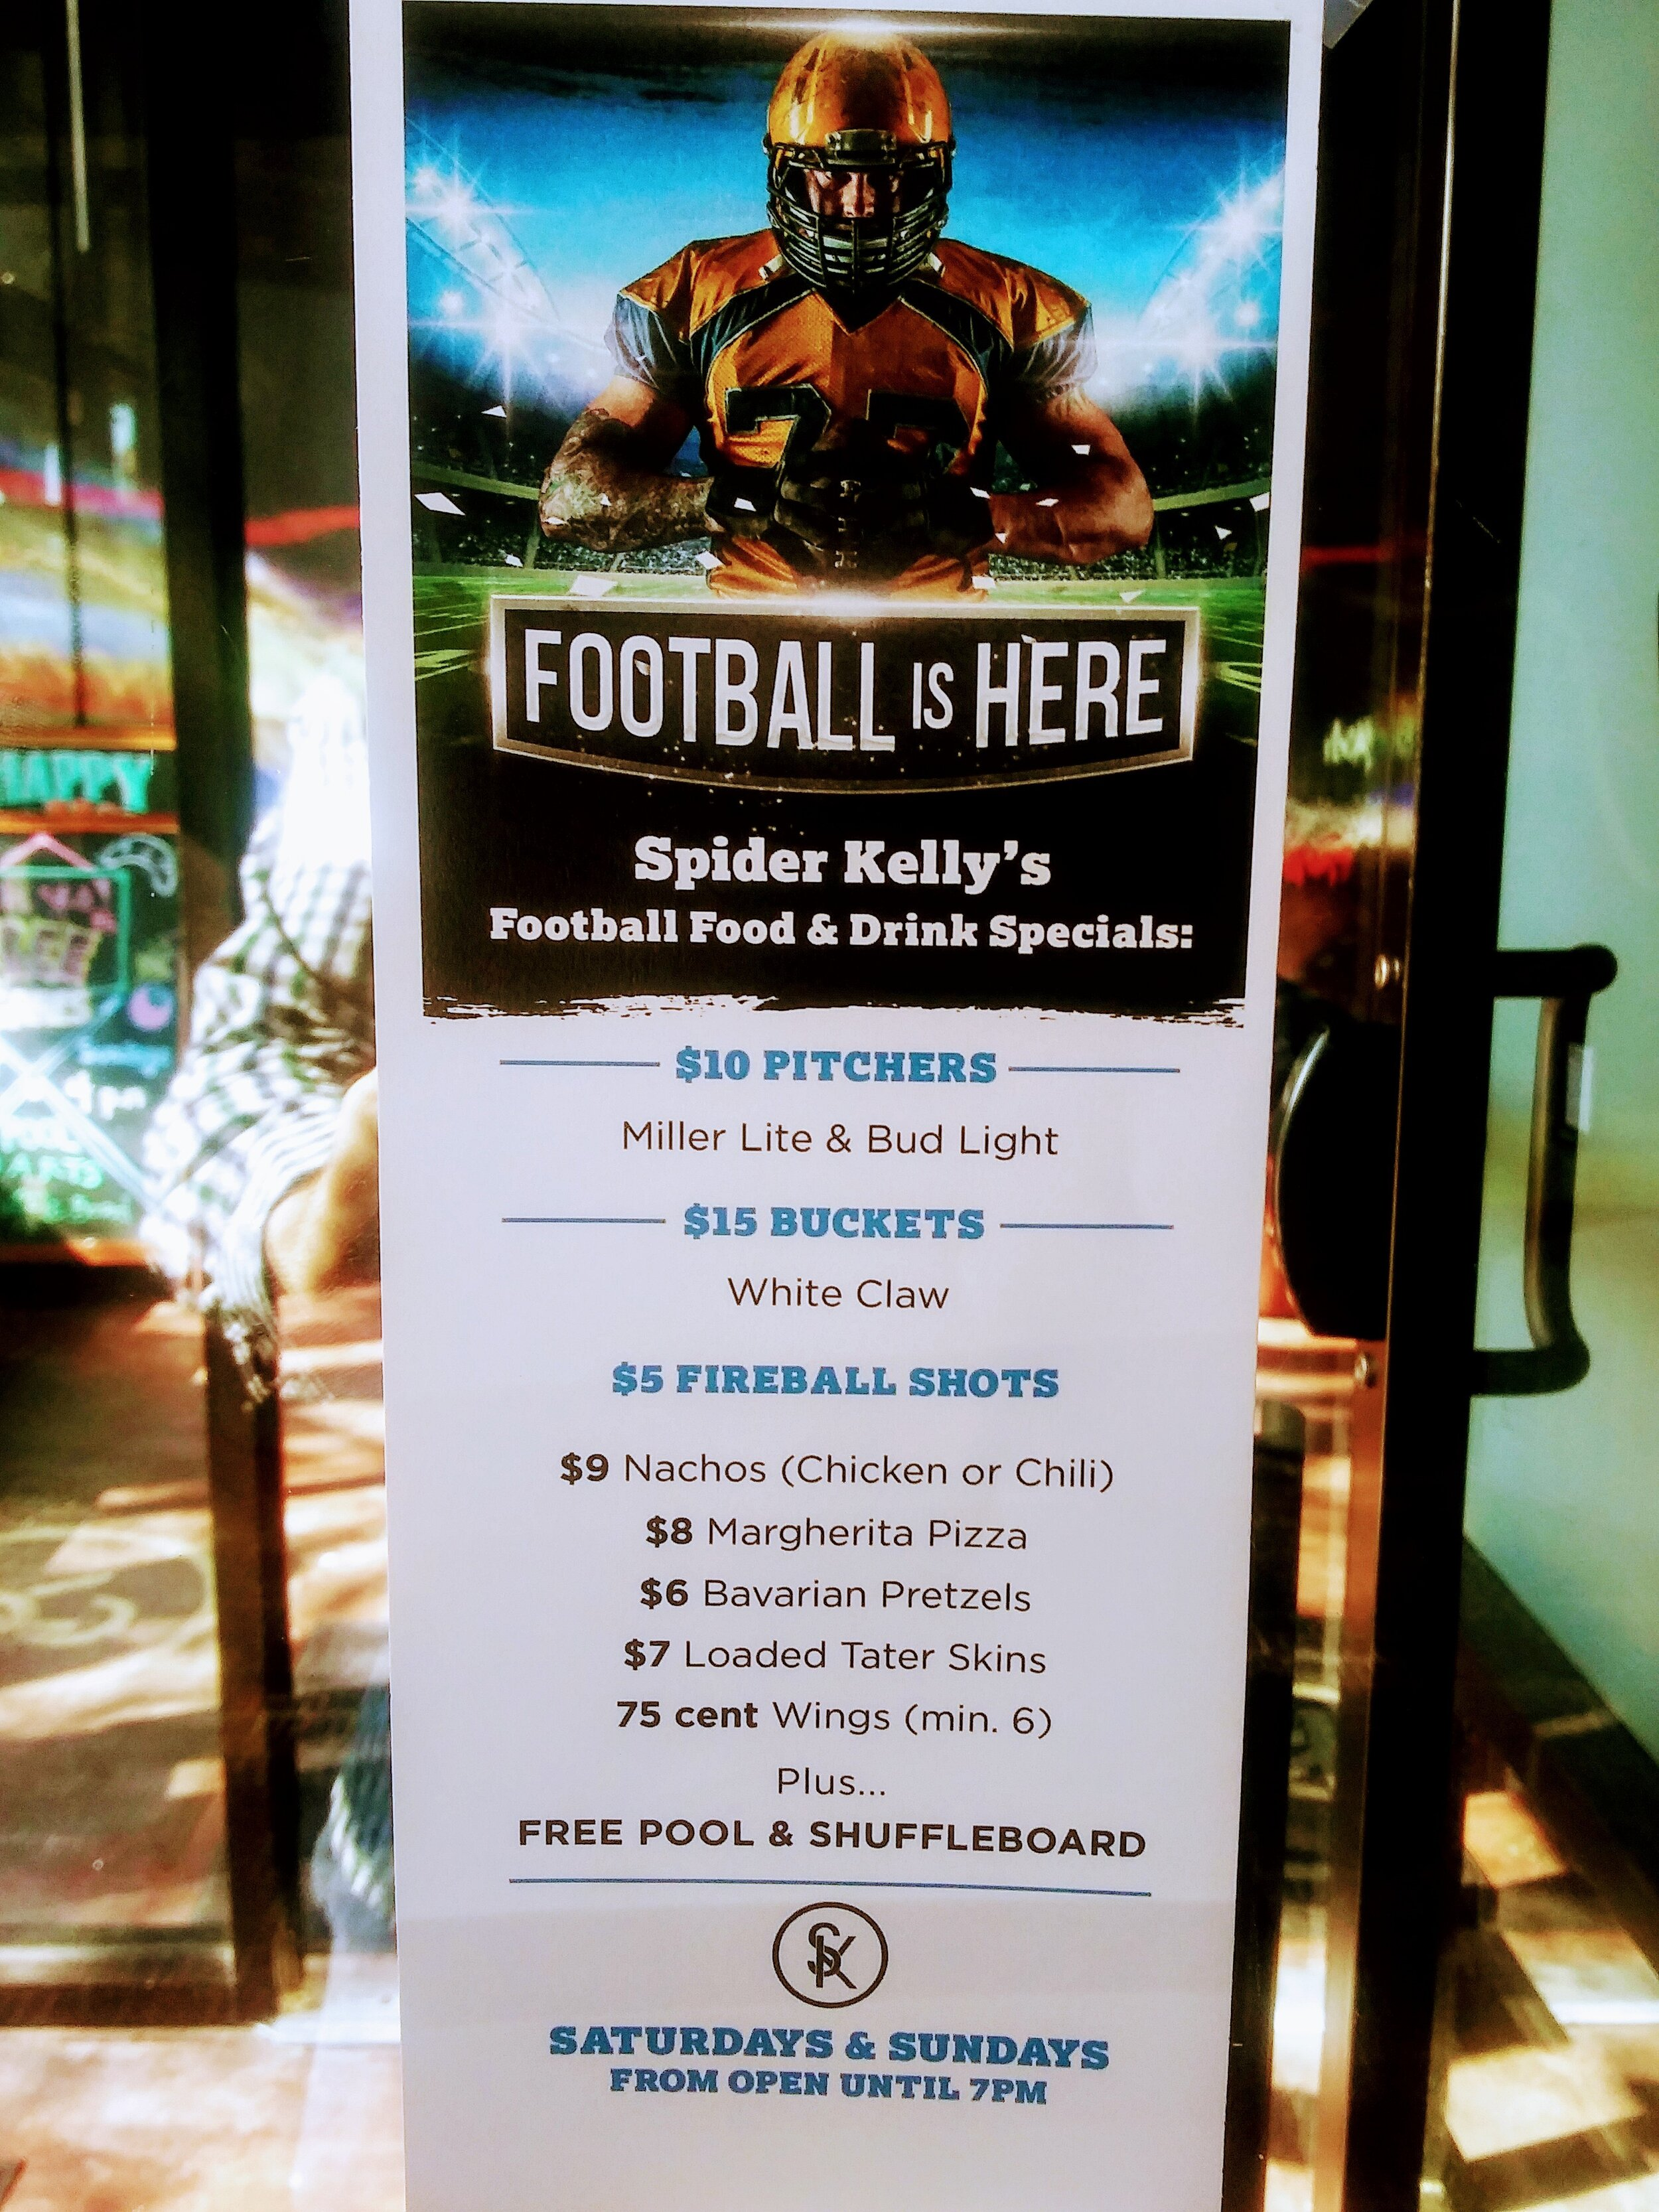 Enjoy the best football specials in town every Saturday and Sunday til 7pm!